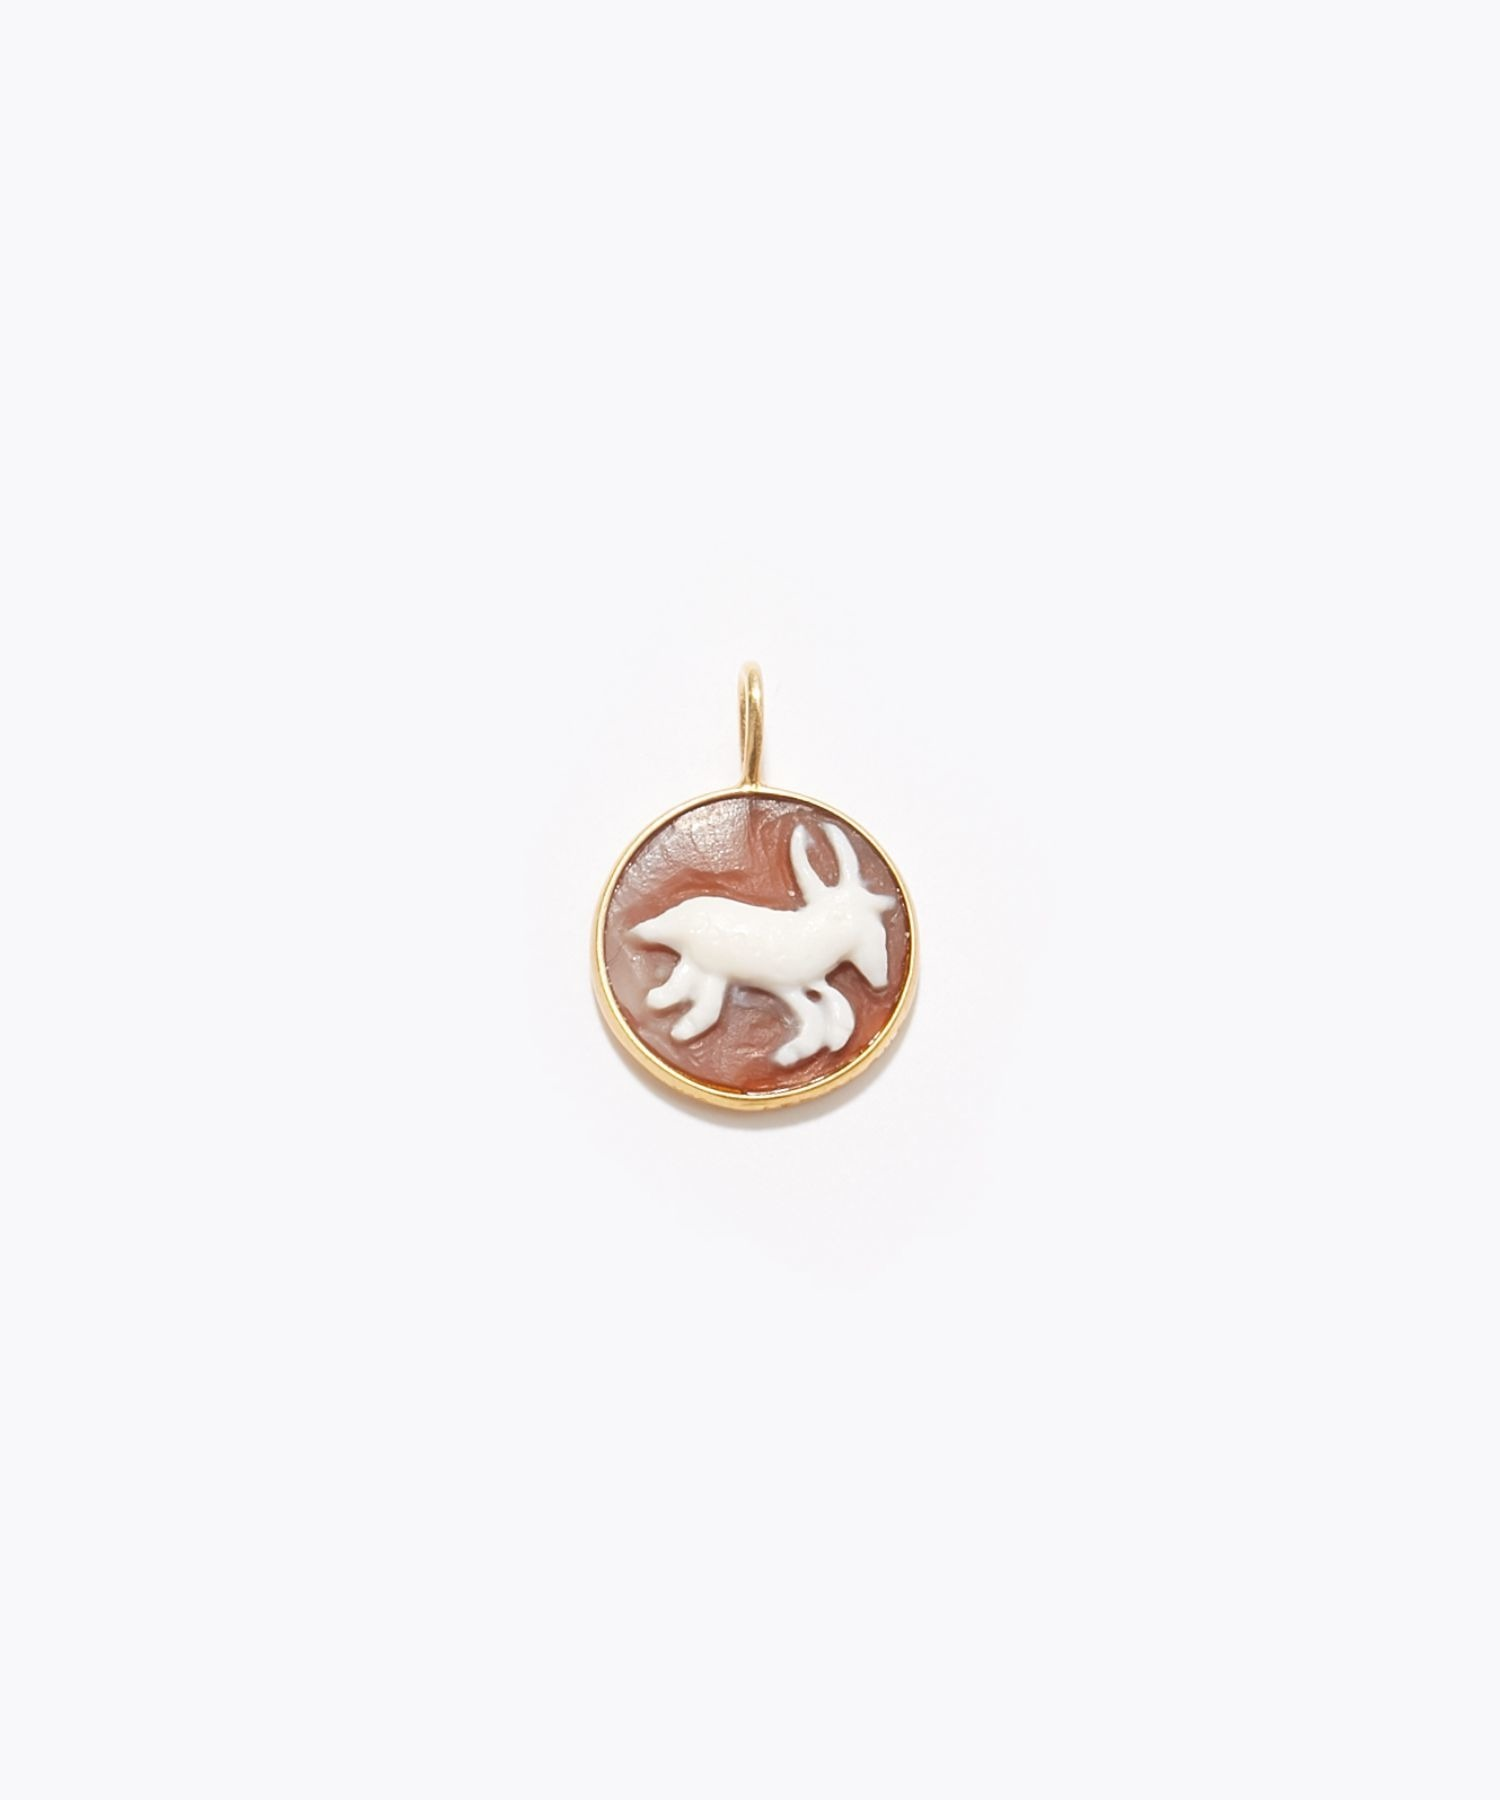 [constellation] Capricorn cameo curving charm